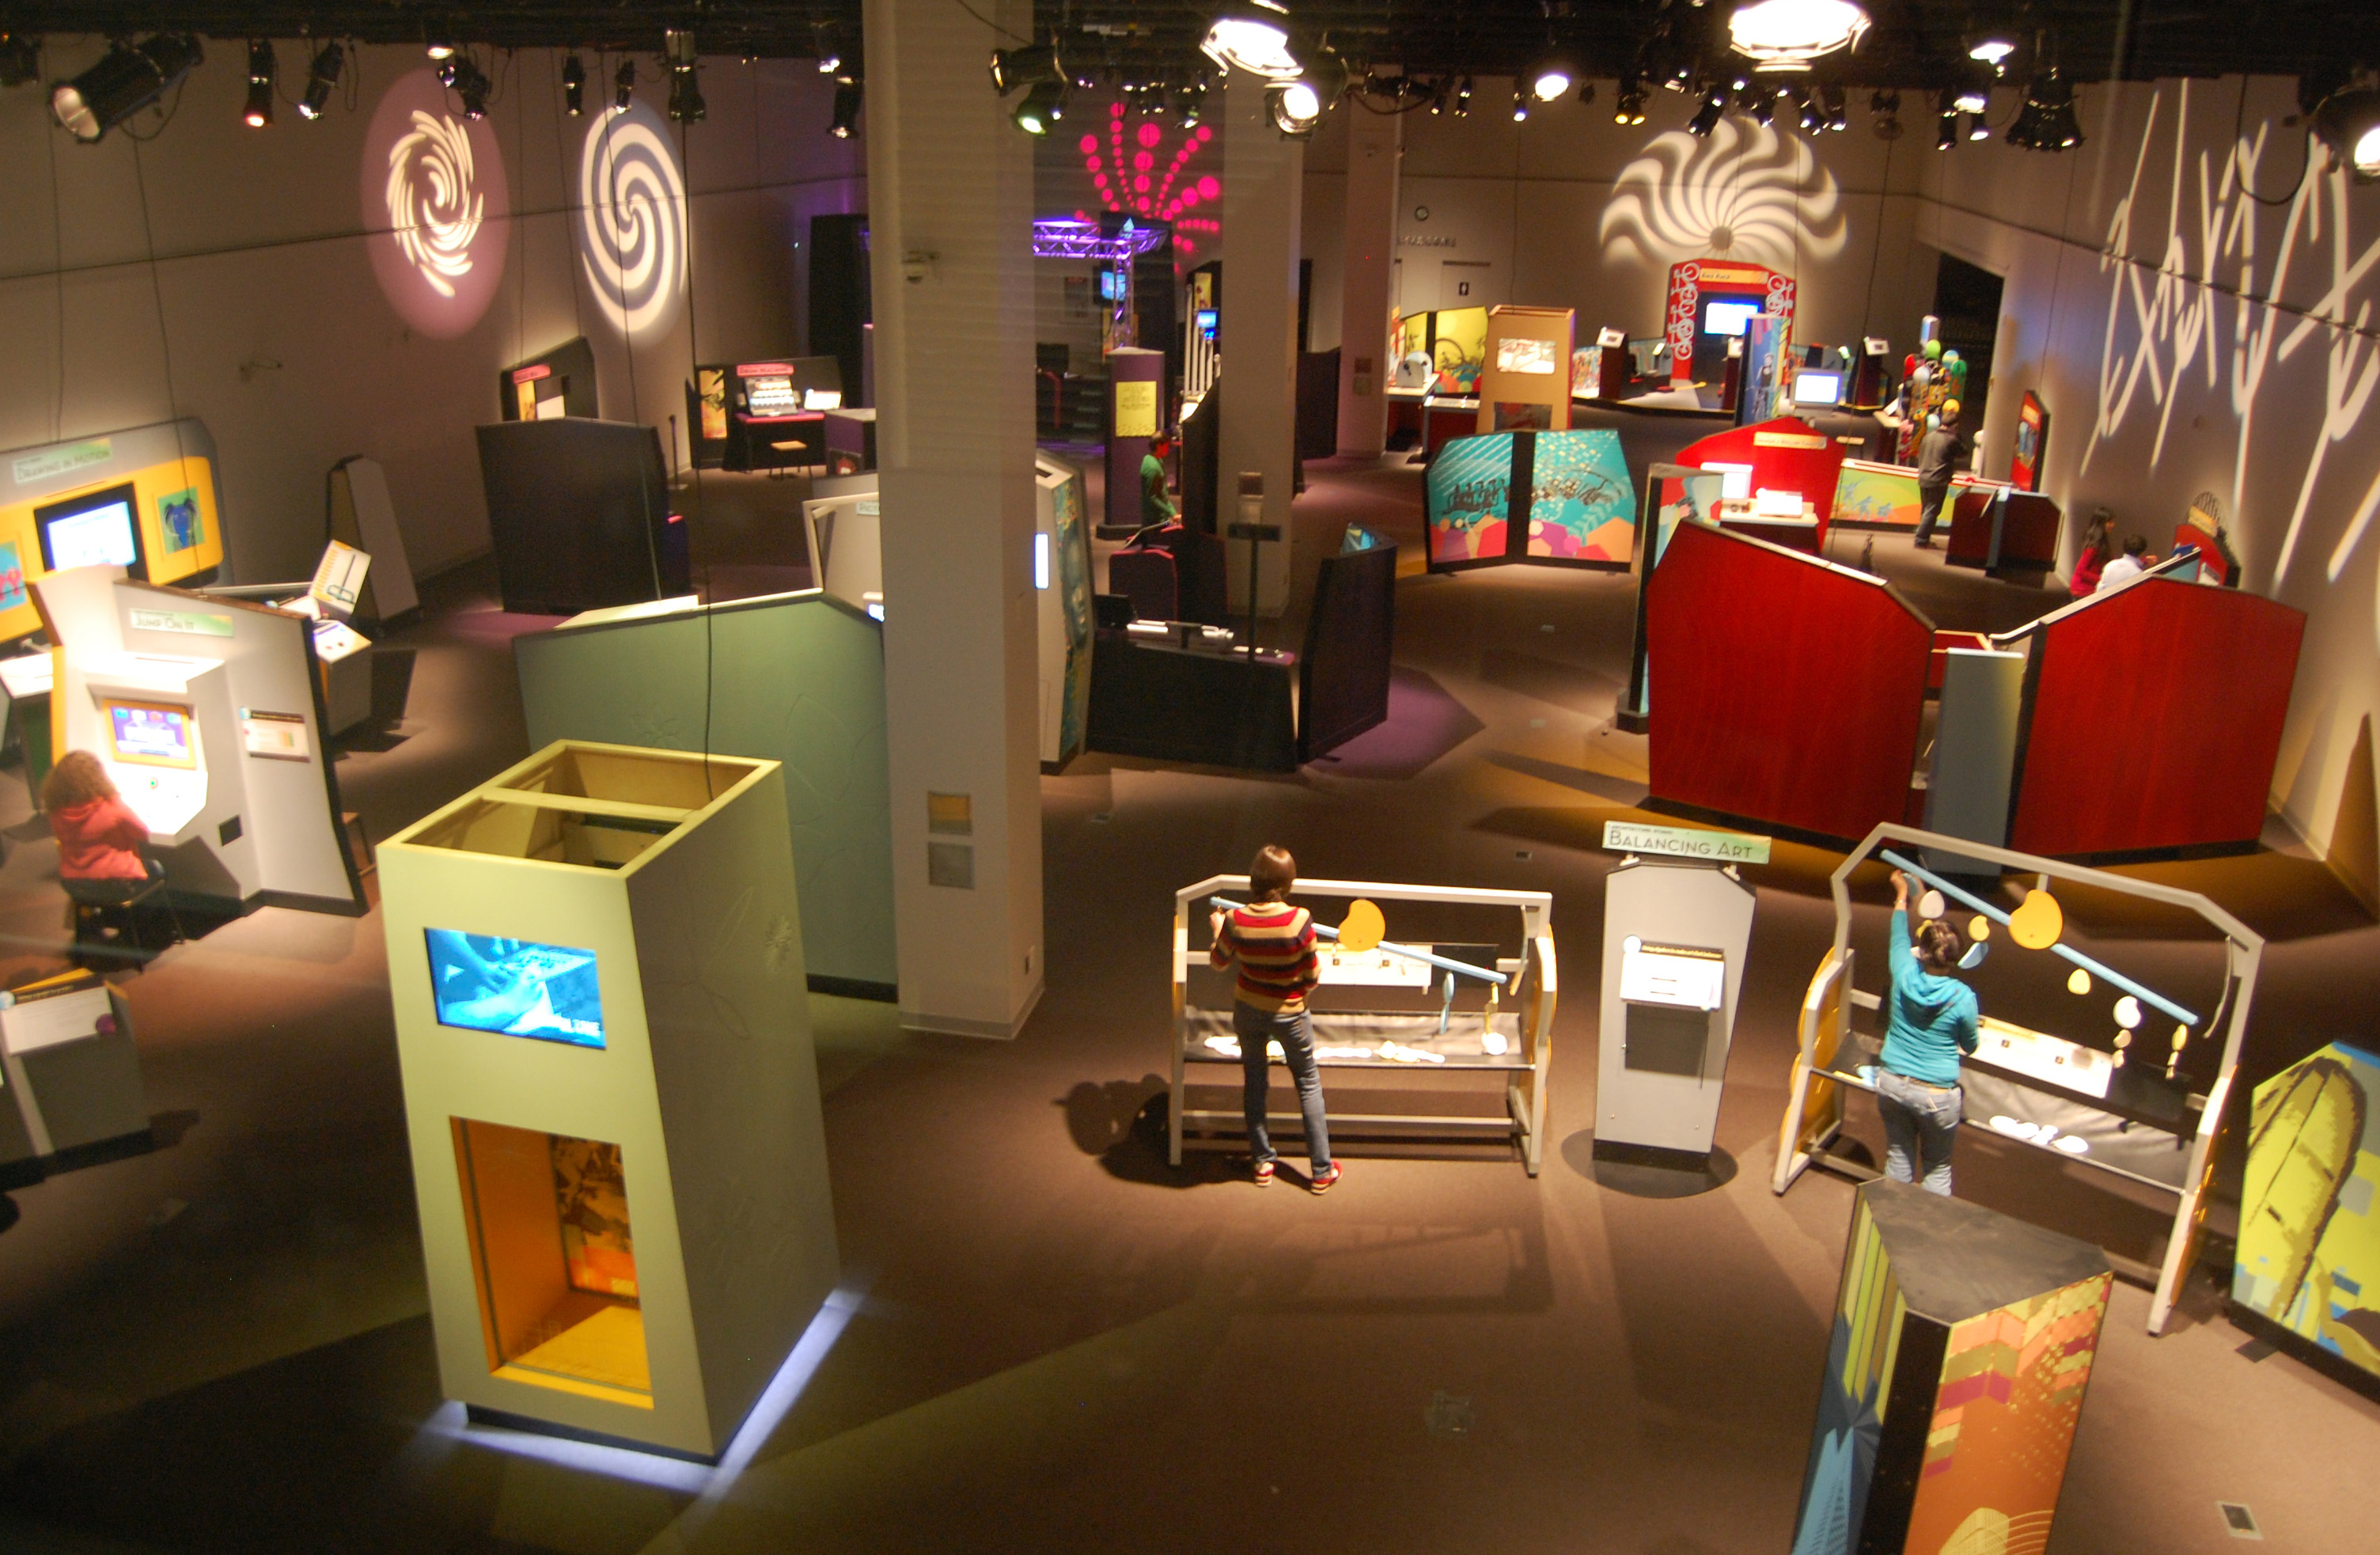 Kids Exhibition Booth : Featured traveling exhibit mcwane science center